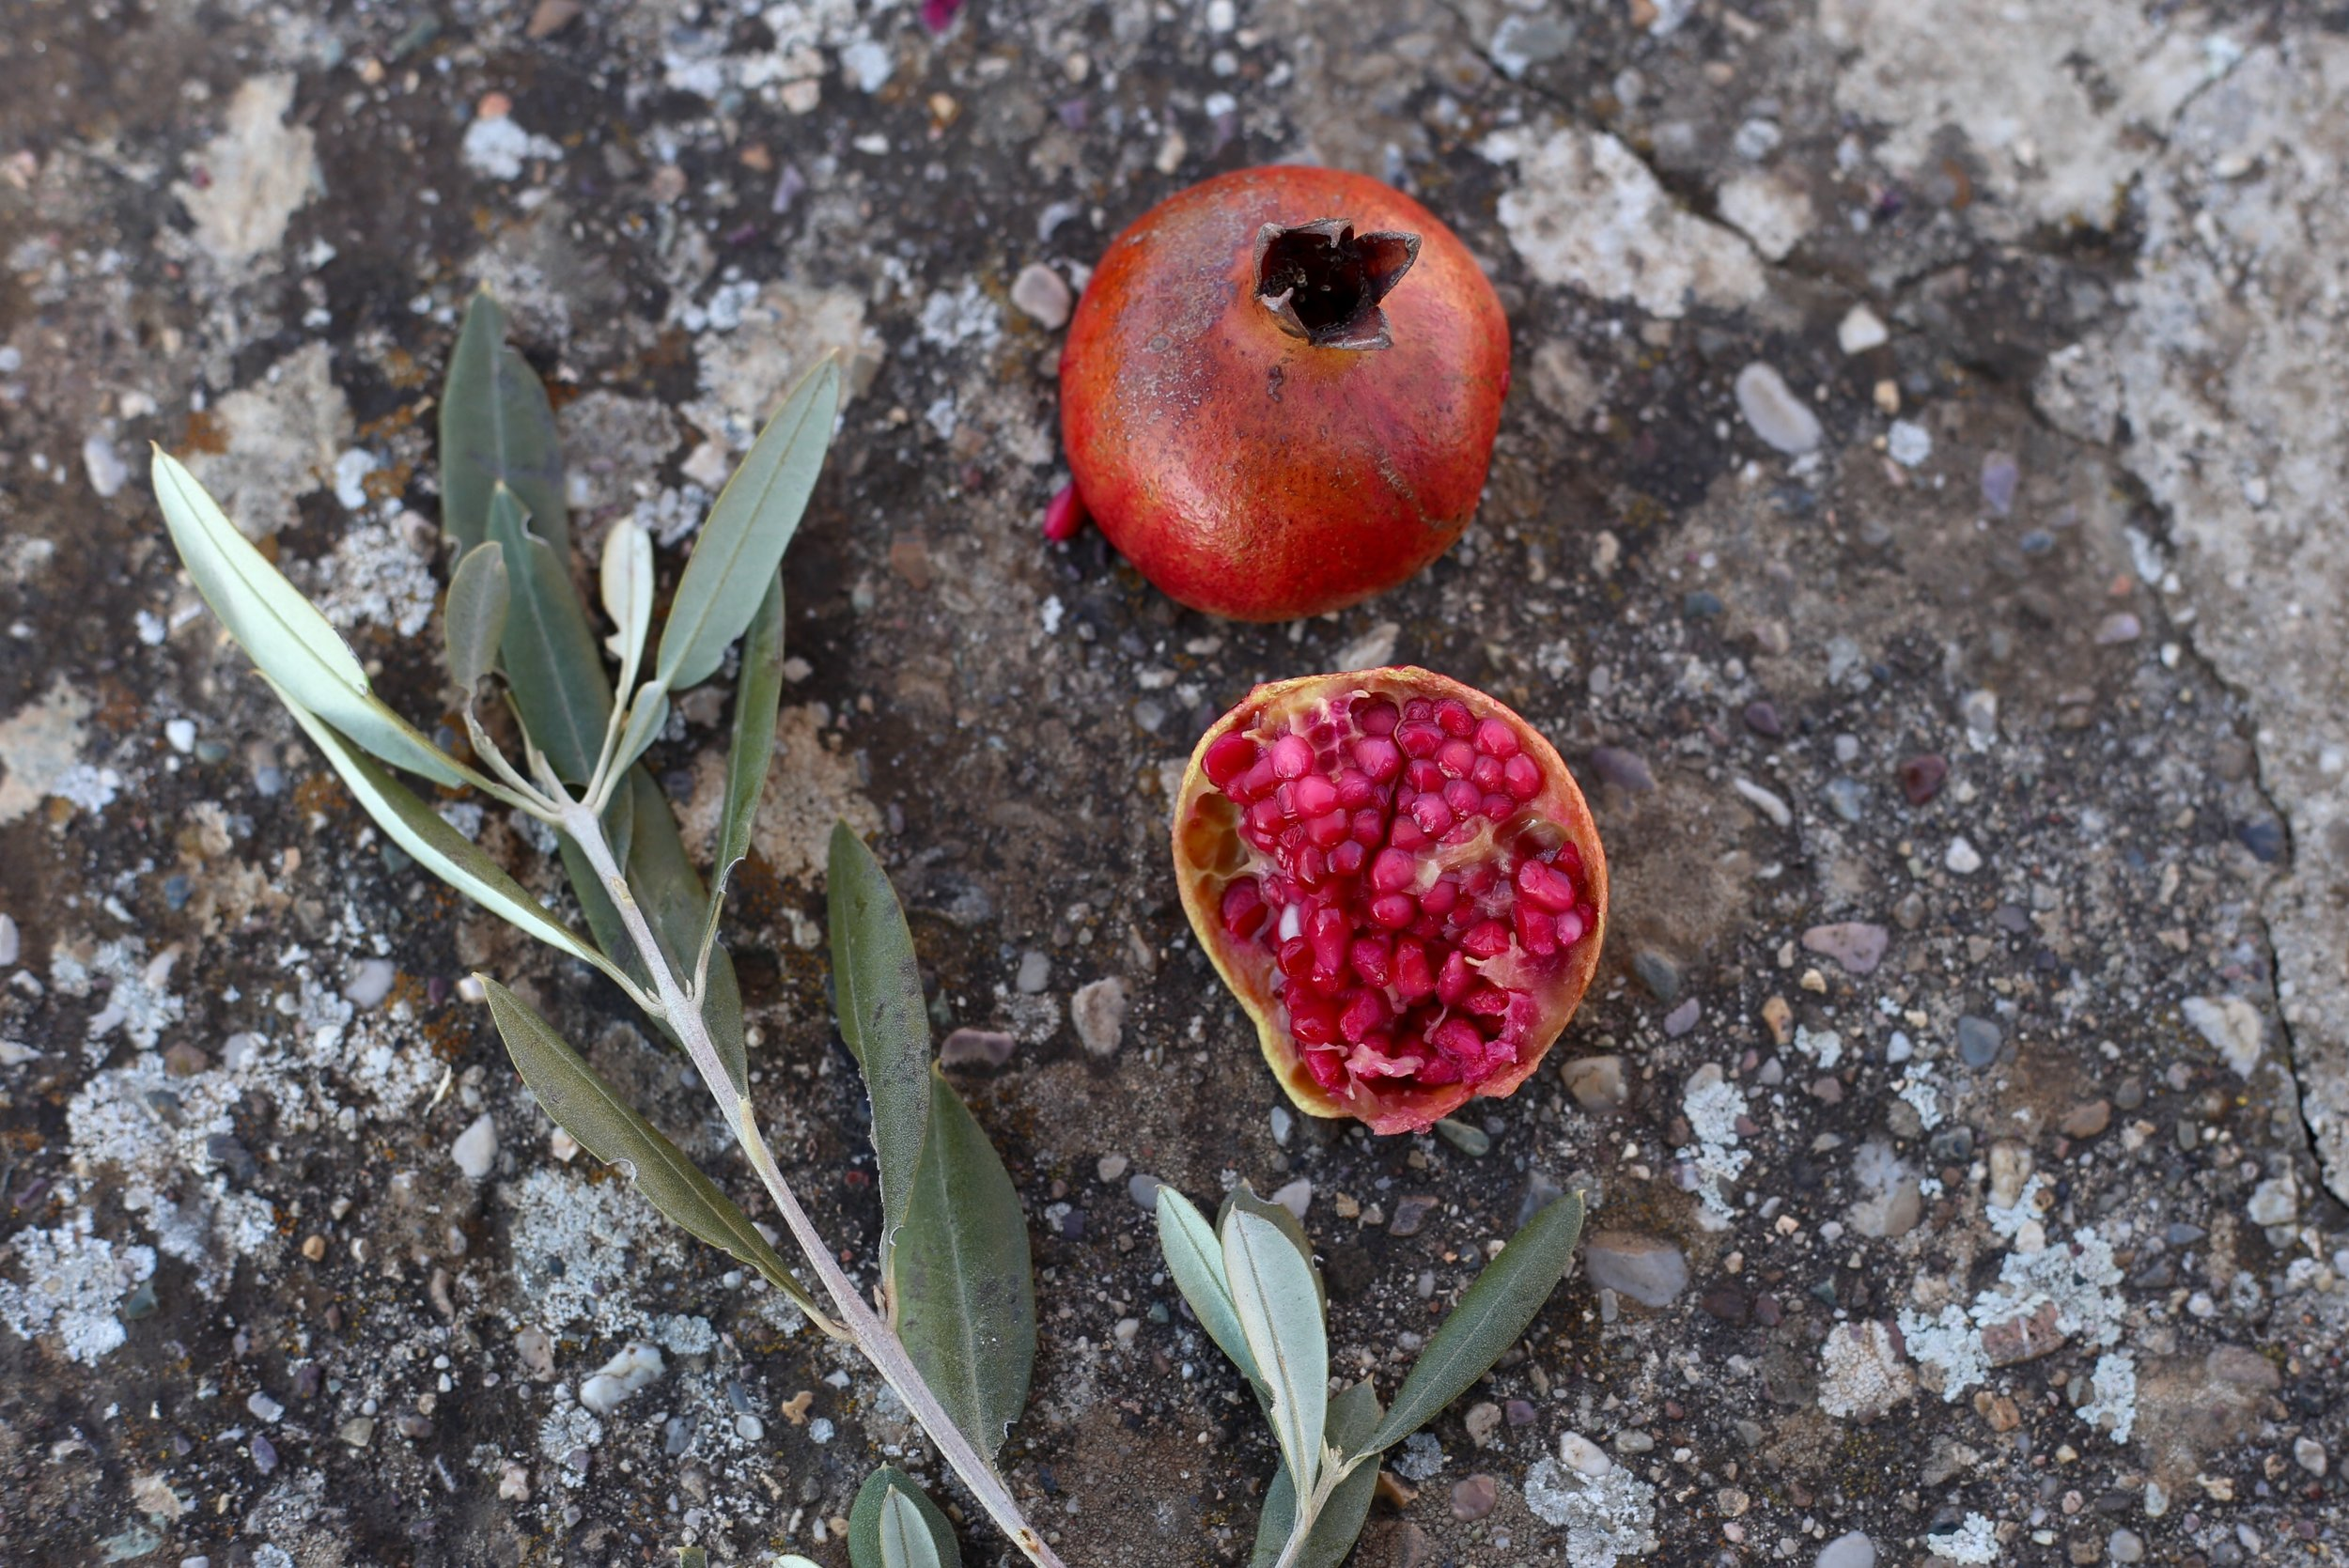 Wild pomegranate with pink seeds and an olive branch.